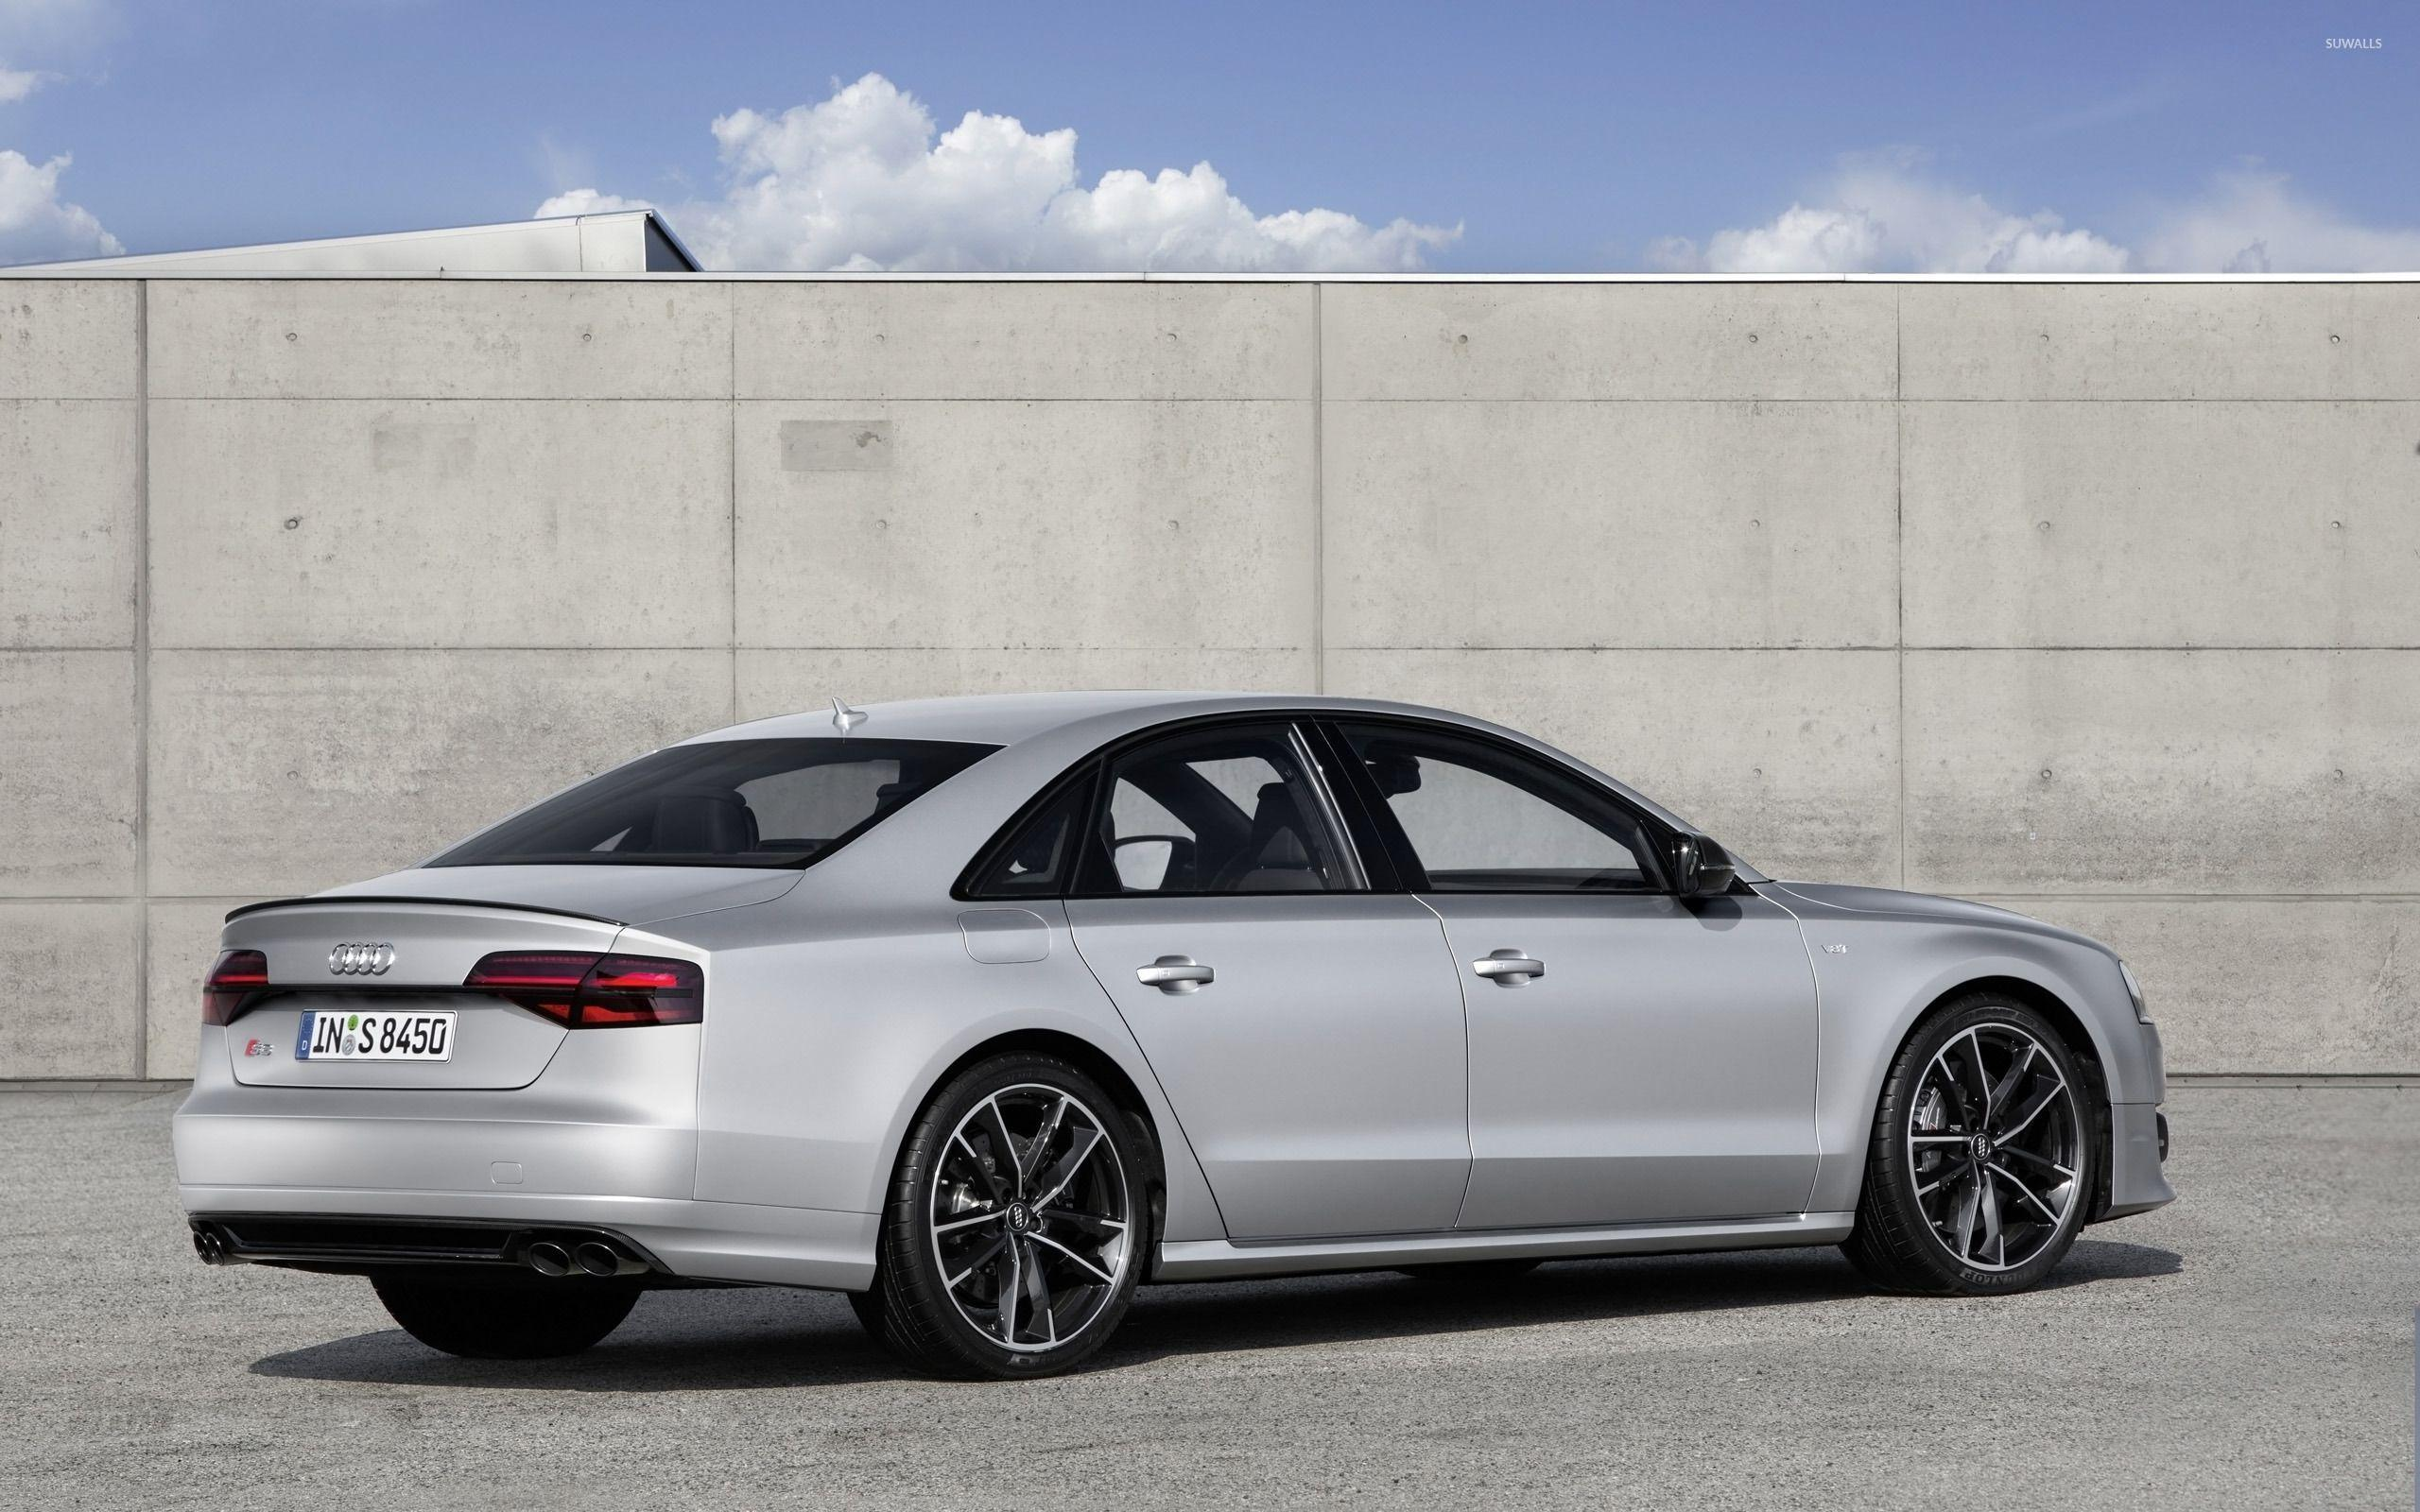 2016 Silver Audi S8 back side view wallpapers